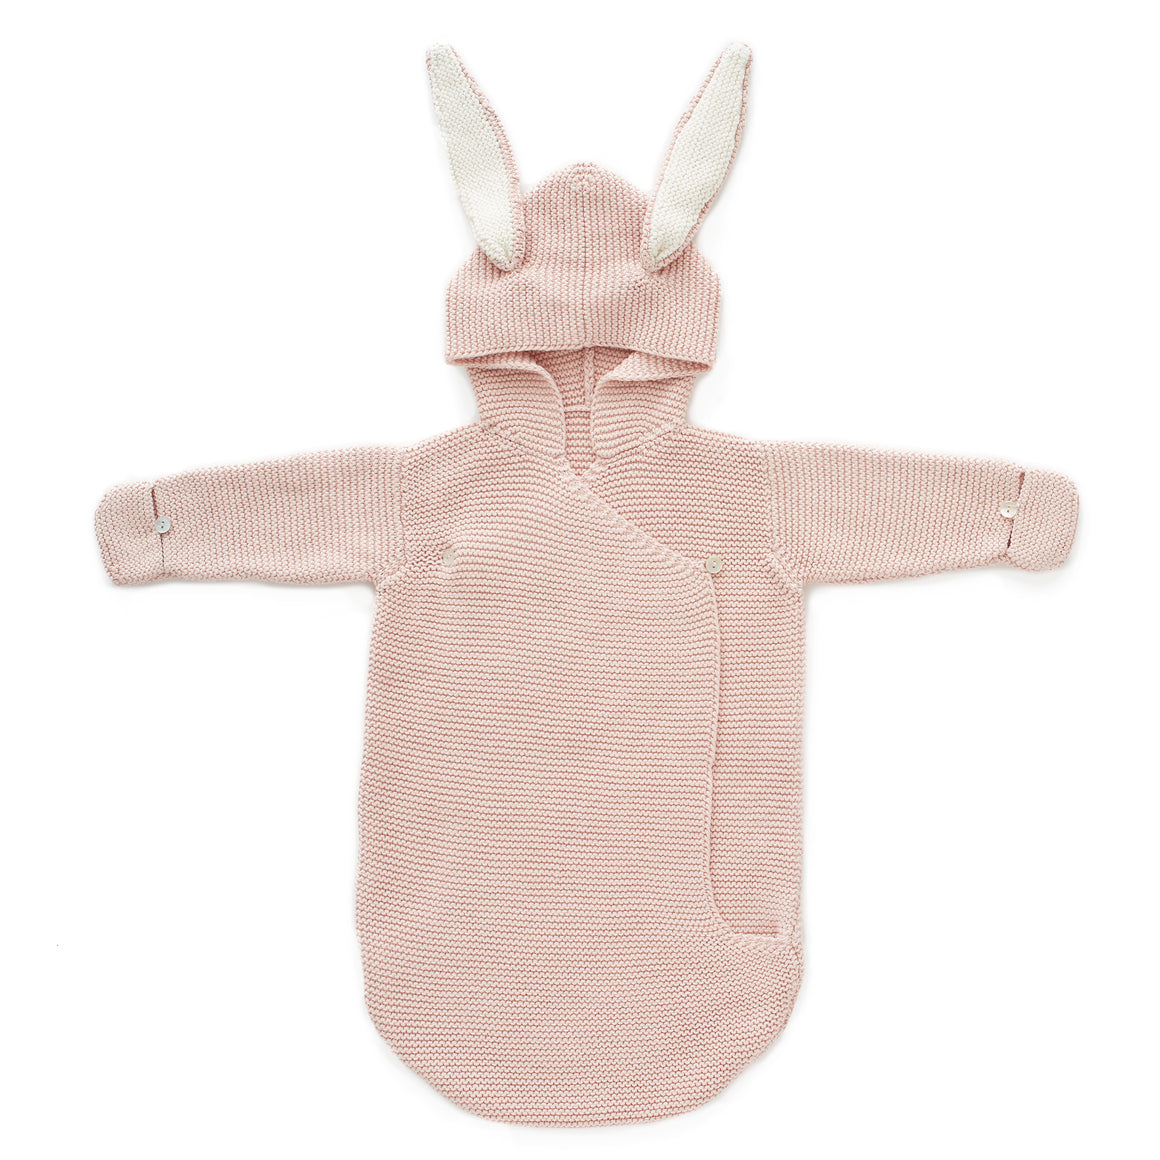 OEUF - Bunny Wrap - Light Pink - Last One!!